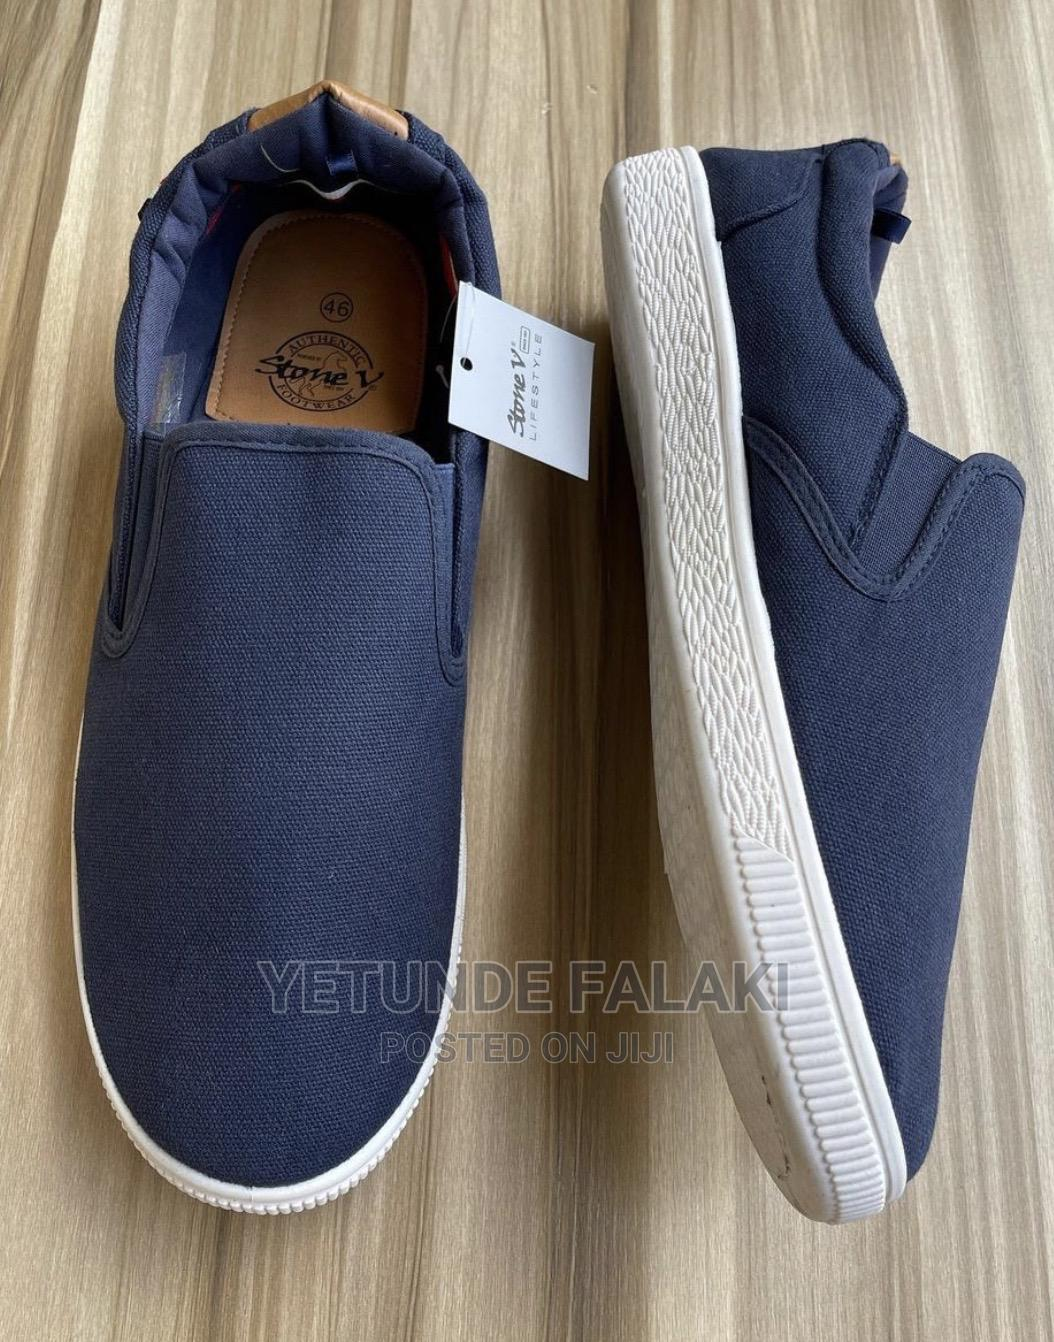 Unisex Sneakers   Shoes for sale in Abeokuta South, Ogun State, Nigeria